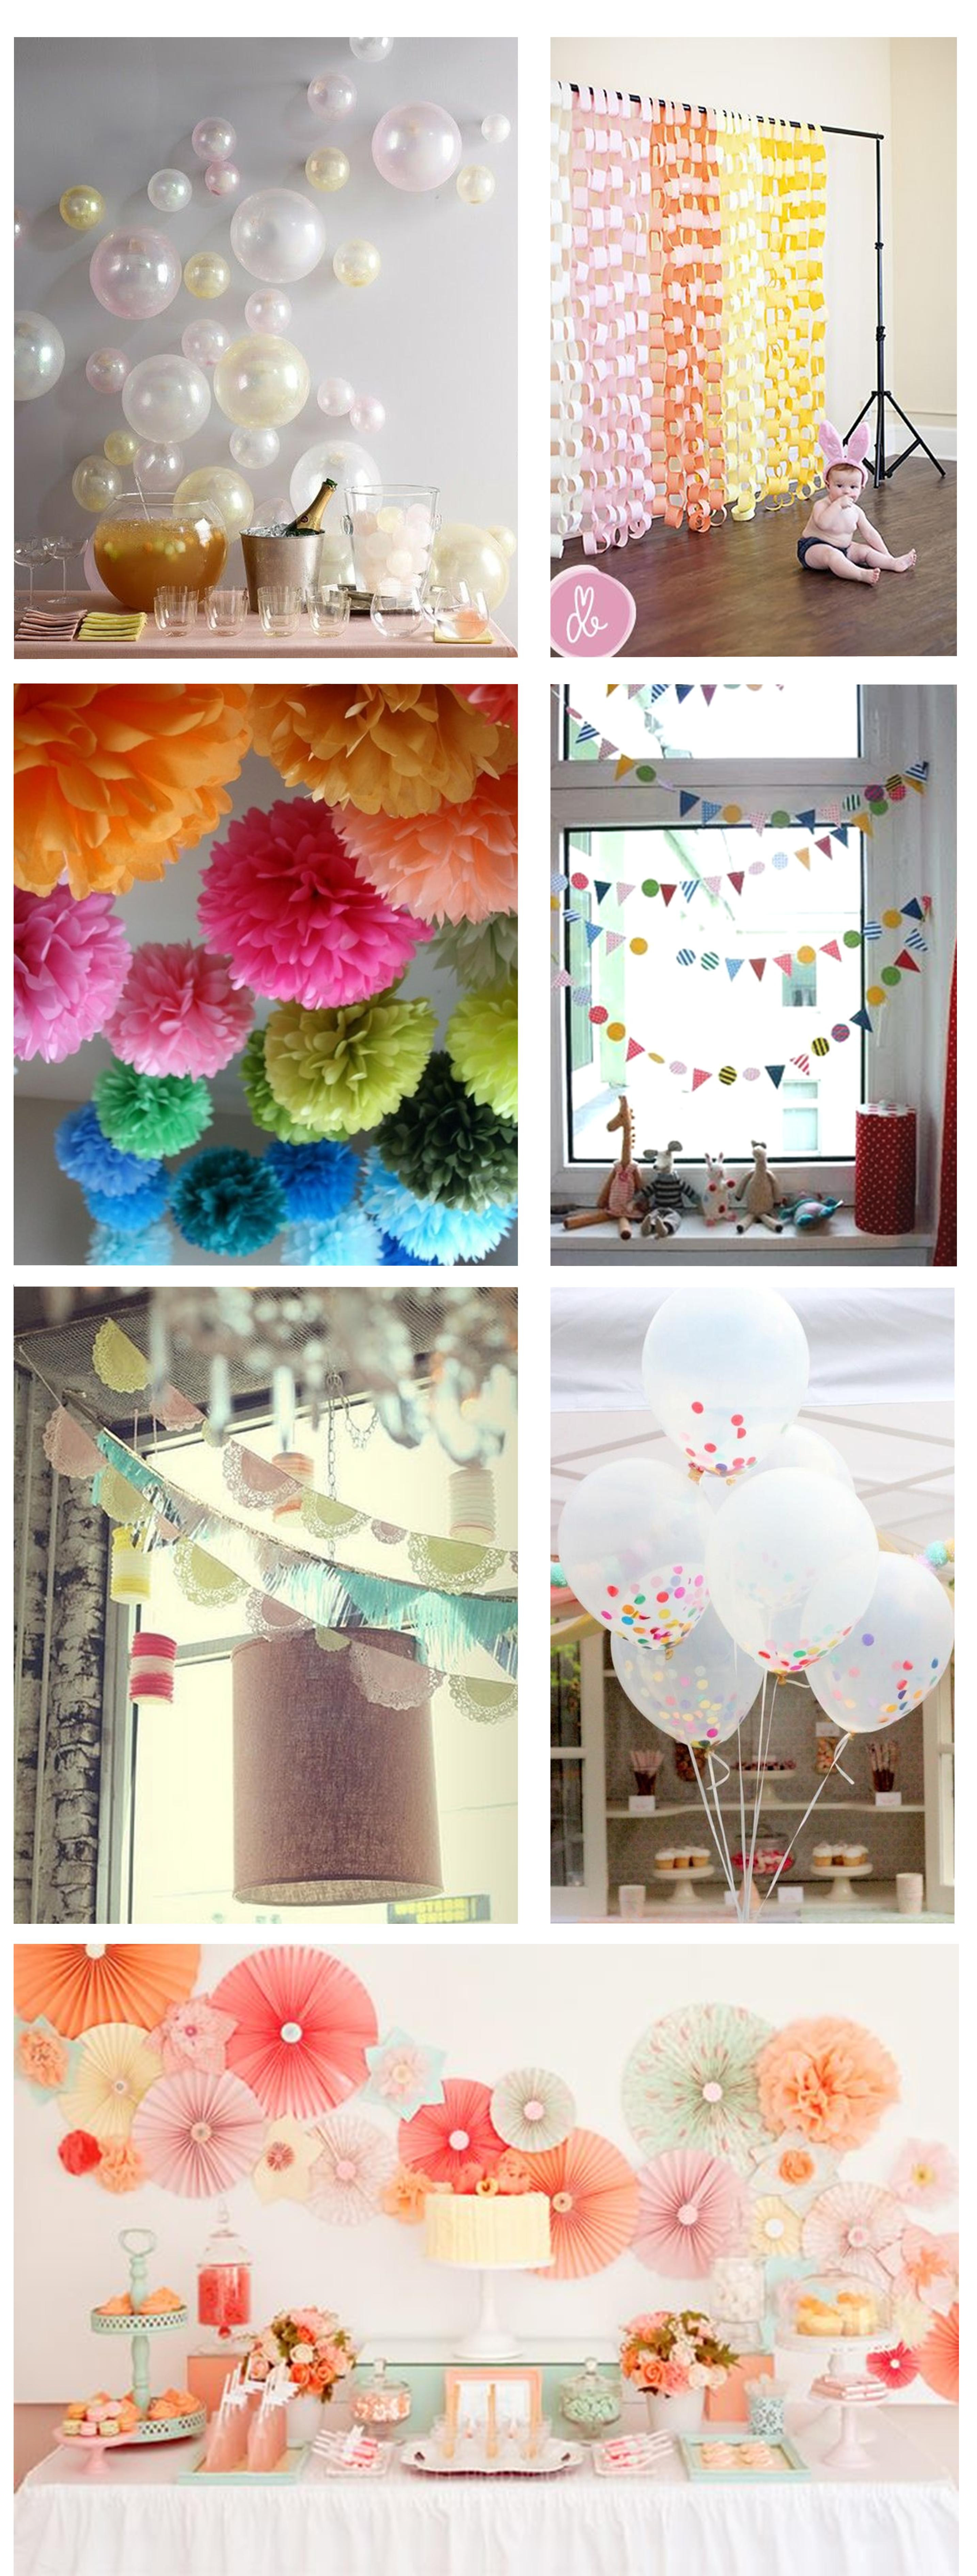 Best ideas about Diy Birthday Party Decorations . Save or Pin Ideas for home made party decorations Now.